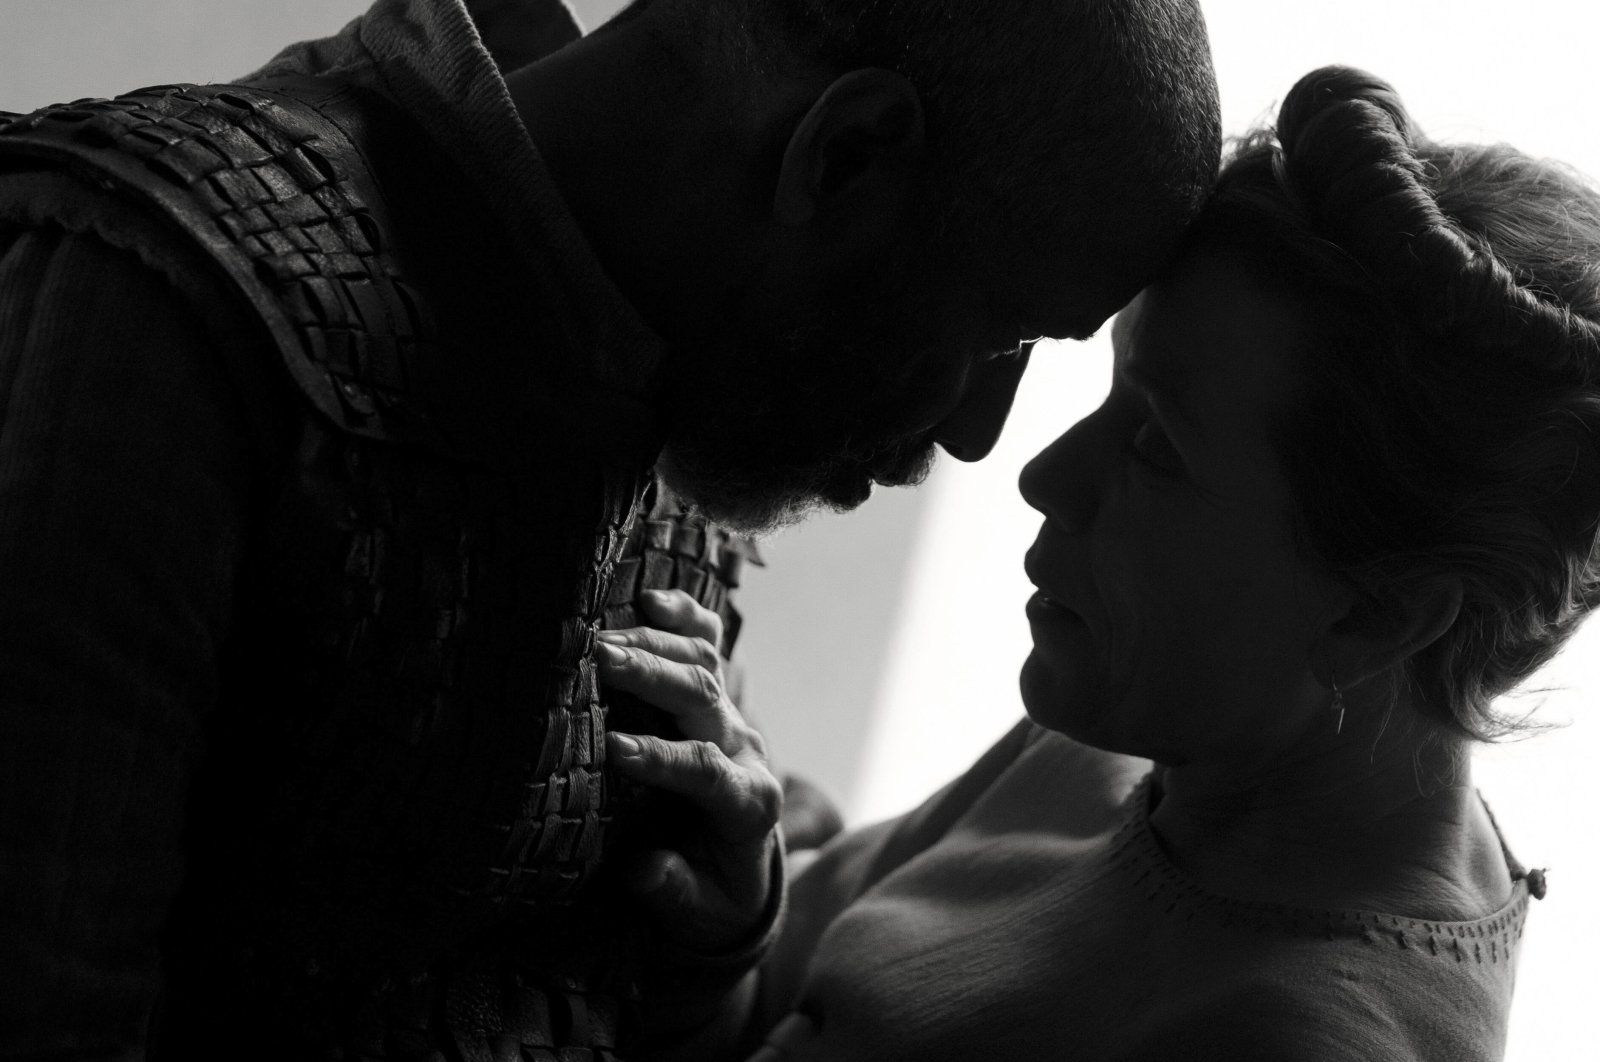 """Denzel Washington (L), and Frances McDormand, in a scene from the film """"The Tragedy of Macbeth."""" (Apple via AP)"""